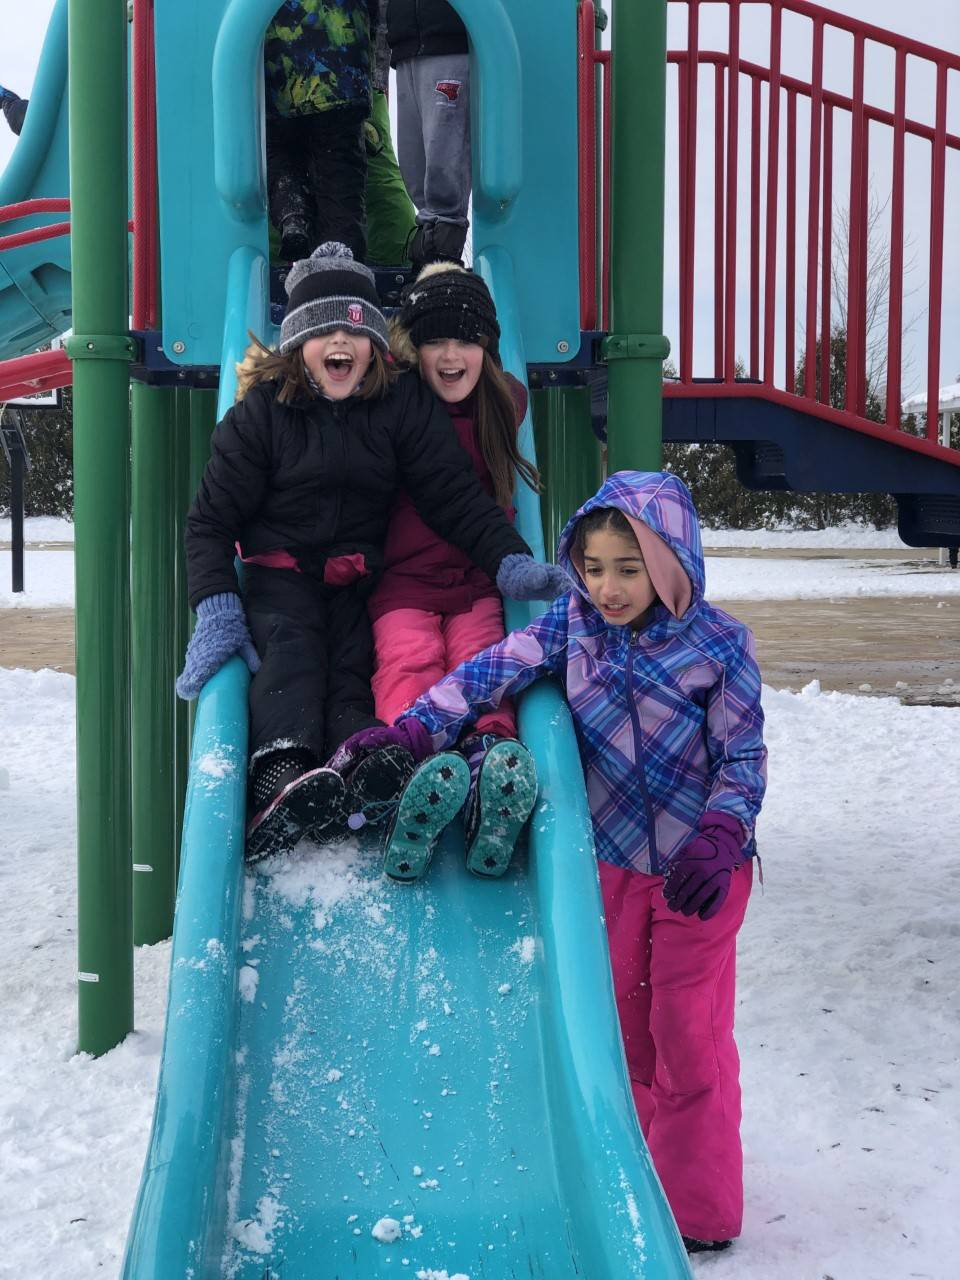 3-4th grade girls playing on slide at recess